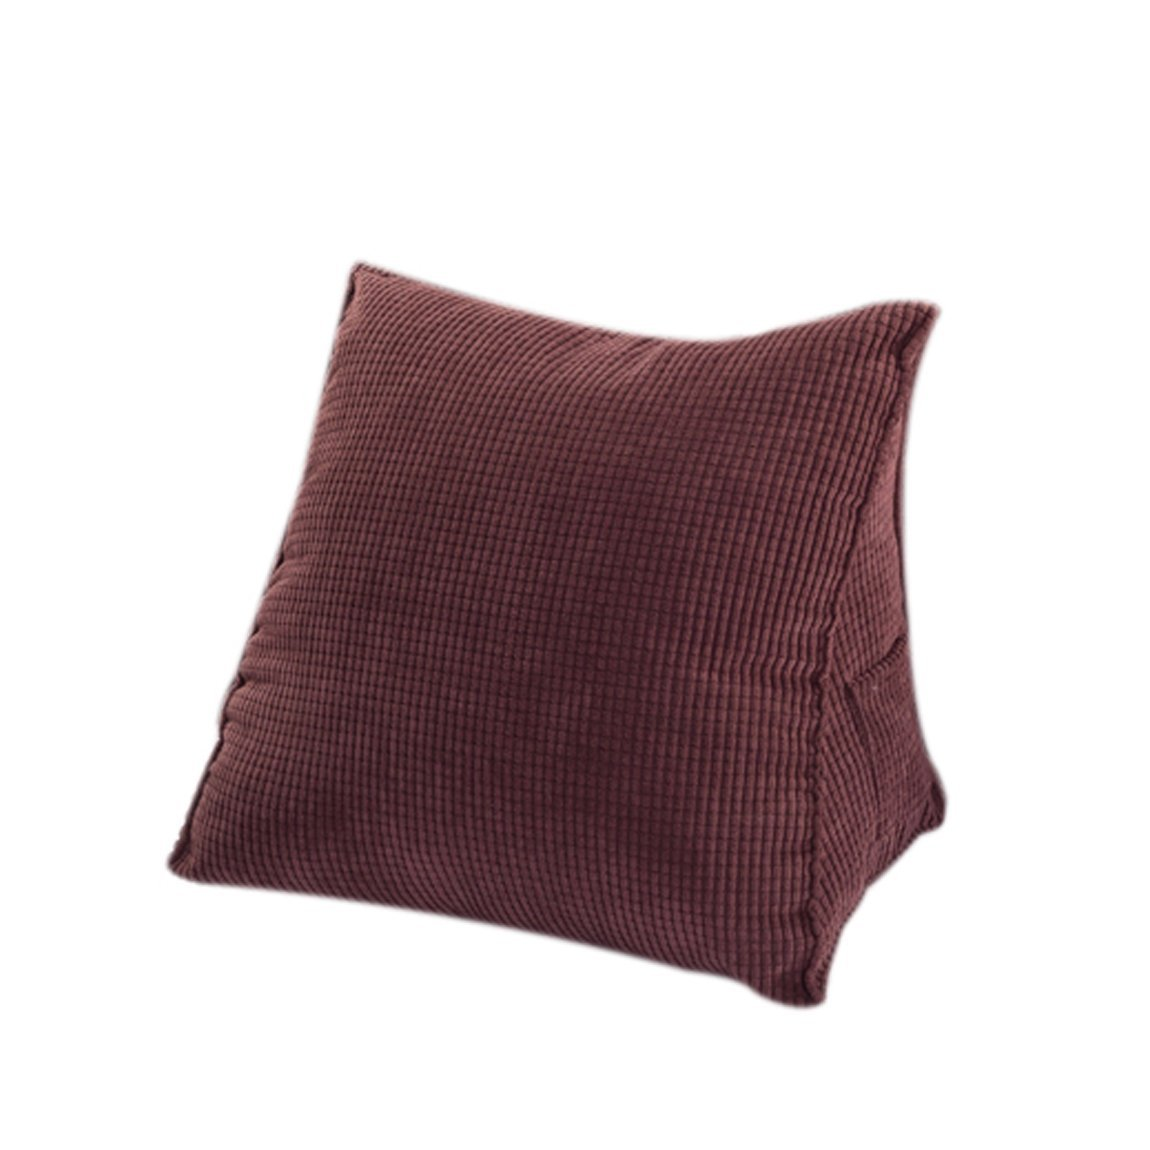 Corduroy bed rest pillow - Cecilia Triangle Cushion Pillow Thick Corduroy Triangle Pillow Back Wedge Cushion Sofa Bed Rest Cushion Back